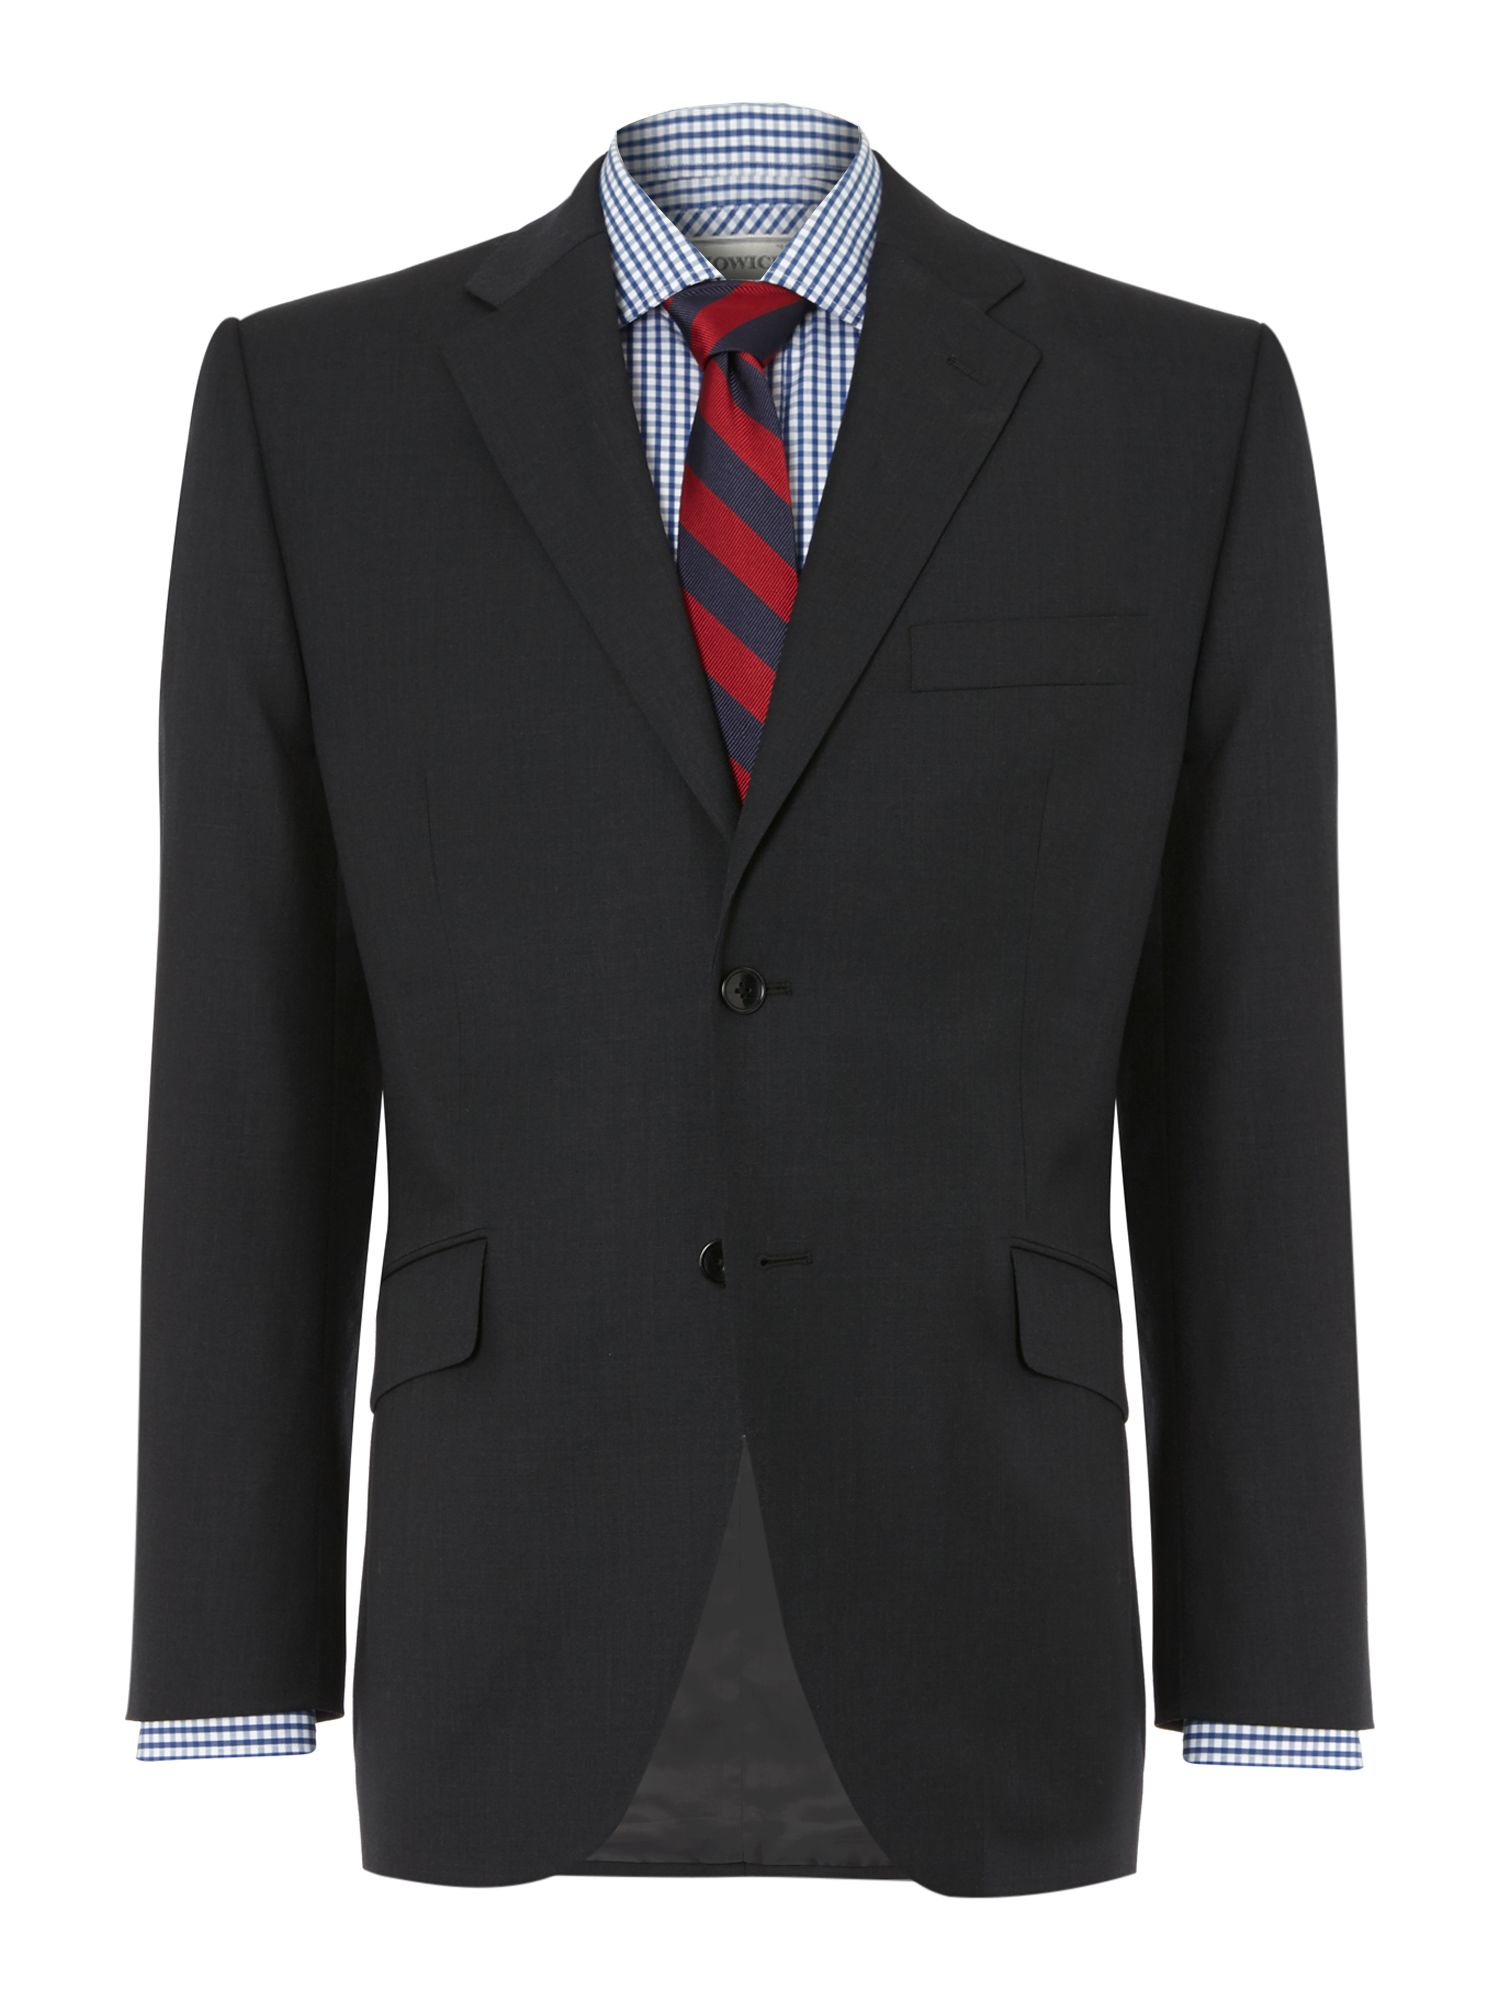 Men's Howick Tailored Fallon notch lapel nested suit, Charcoal